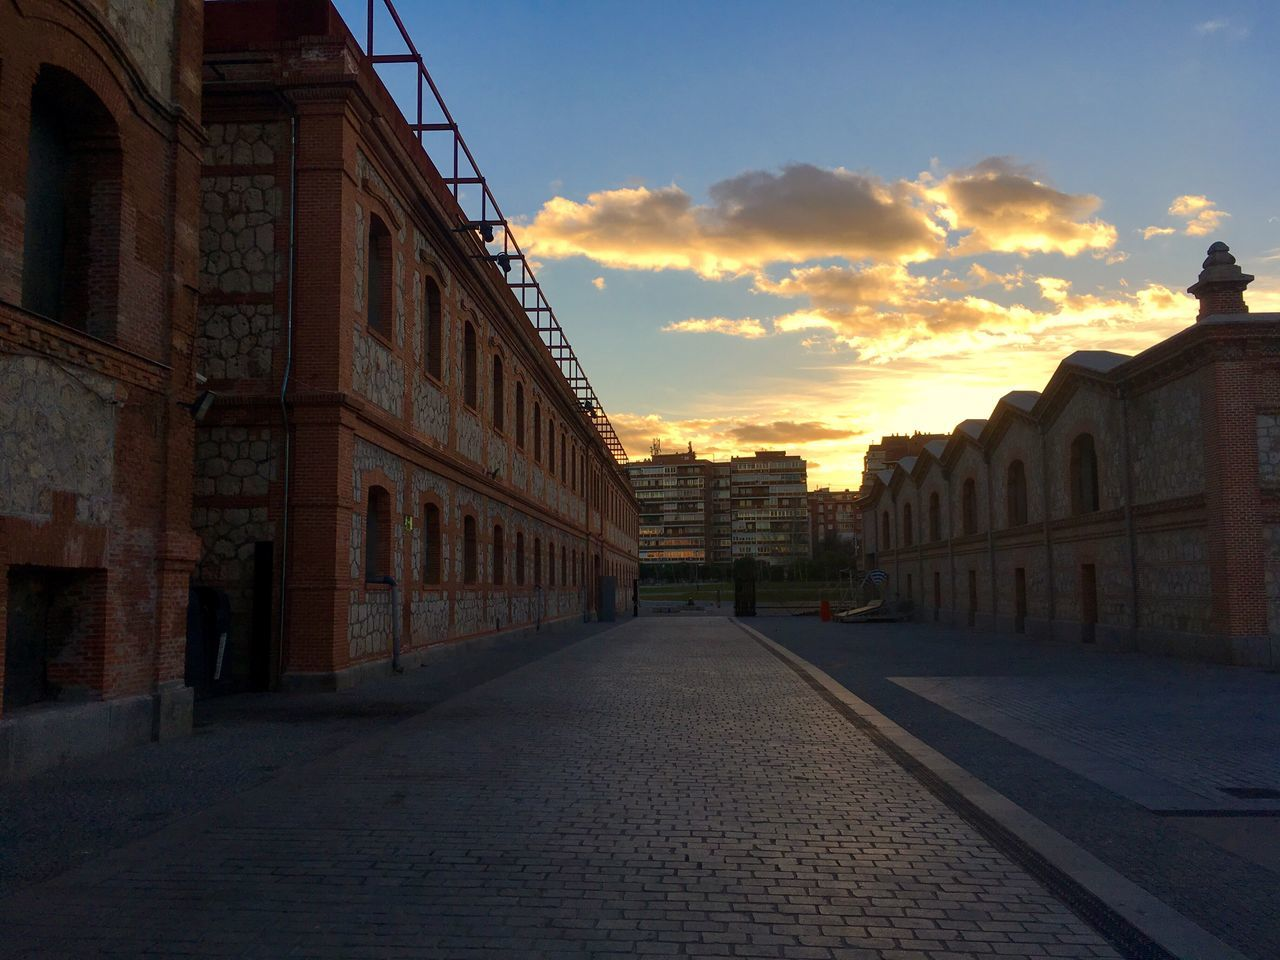 architecture, building exterior, built structure, sunset, sky, street, outdoors, the way forward, city, no people, day